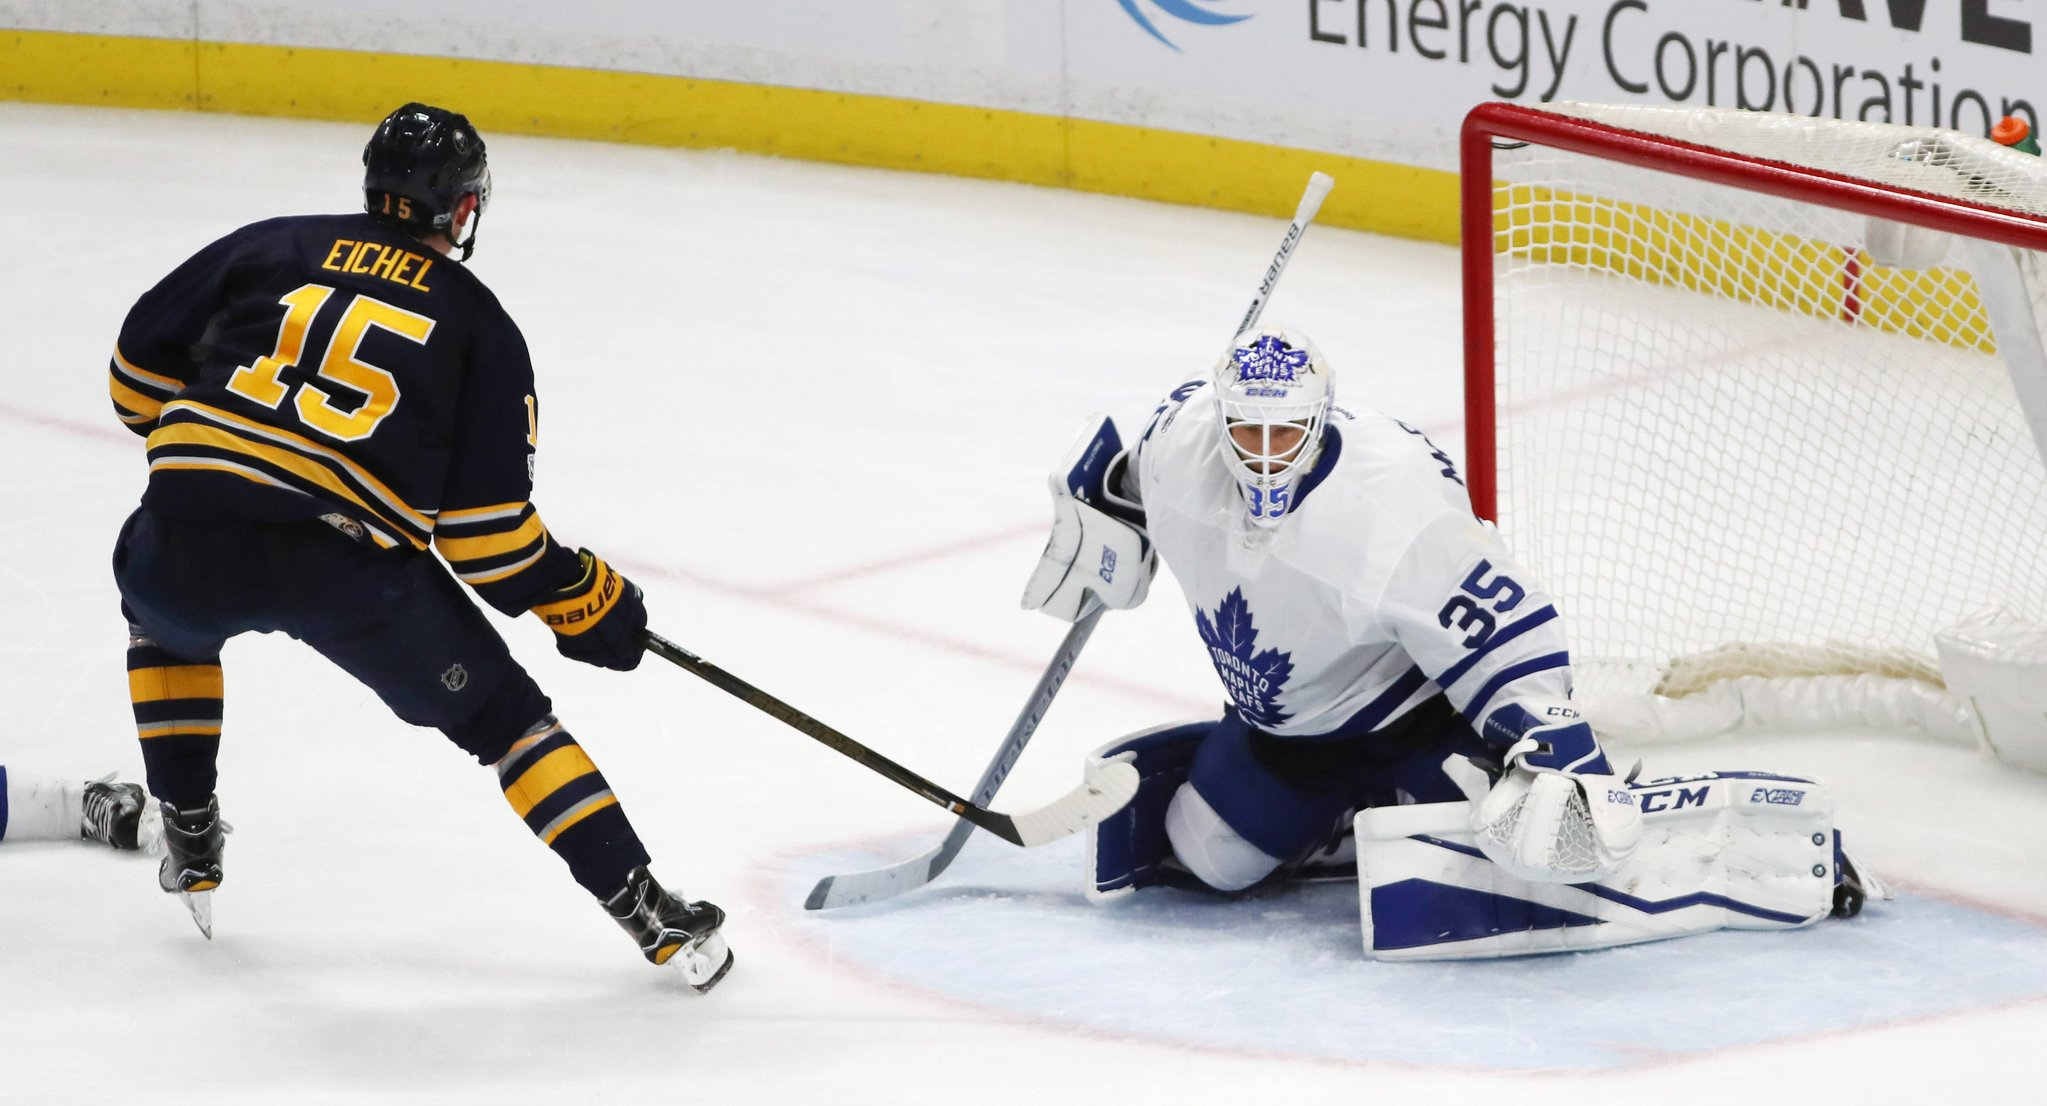 Jack Eichel had a two-goal, three-point night against Curtis McElhinney and Toronto. (James P. McCoy/Buffalo News)